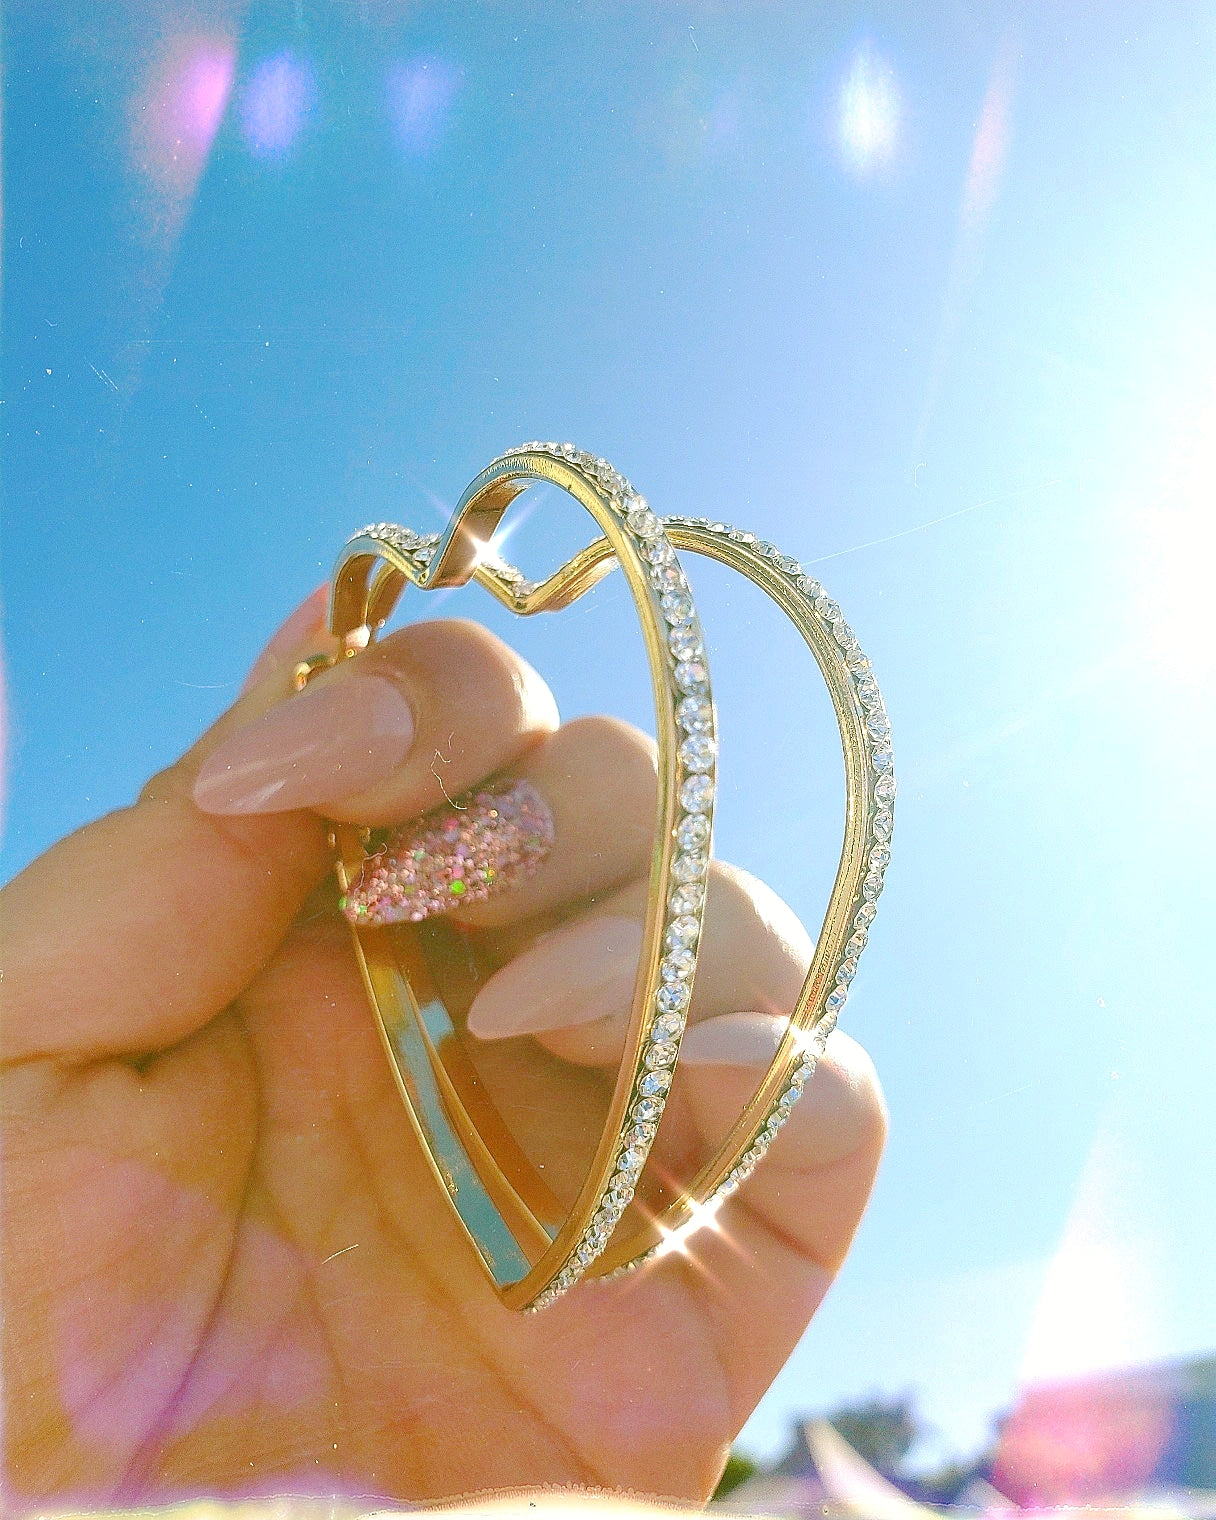 Crystal heart vintage hoops earrings Extra Sparkly Hoop Earrings Latina Jewelry Store